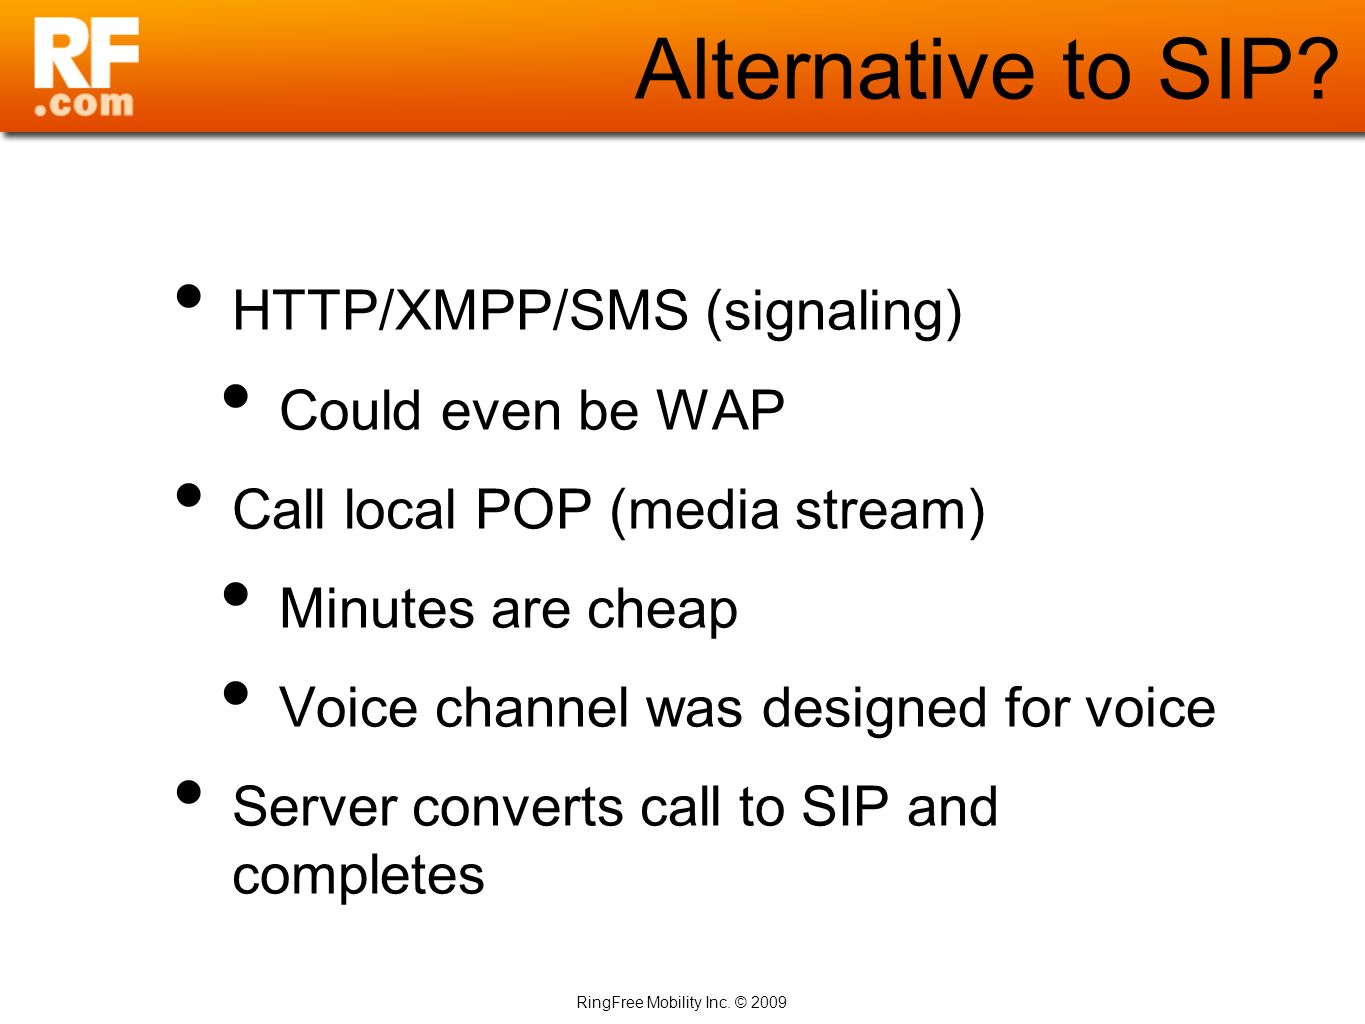 RingFree Mobility Inc. © 2009 Alternative to SIP? HTTP/XMPP/SMS (signaling) Could even be WAP Call local POP (media stream) Minutes are cheap Voice ch